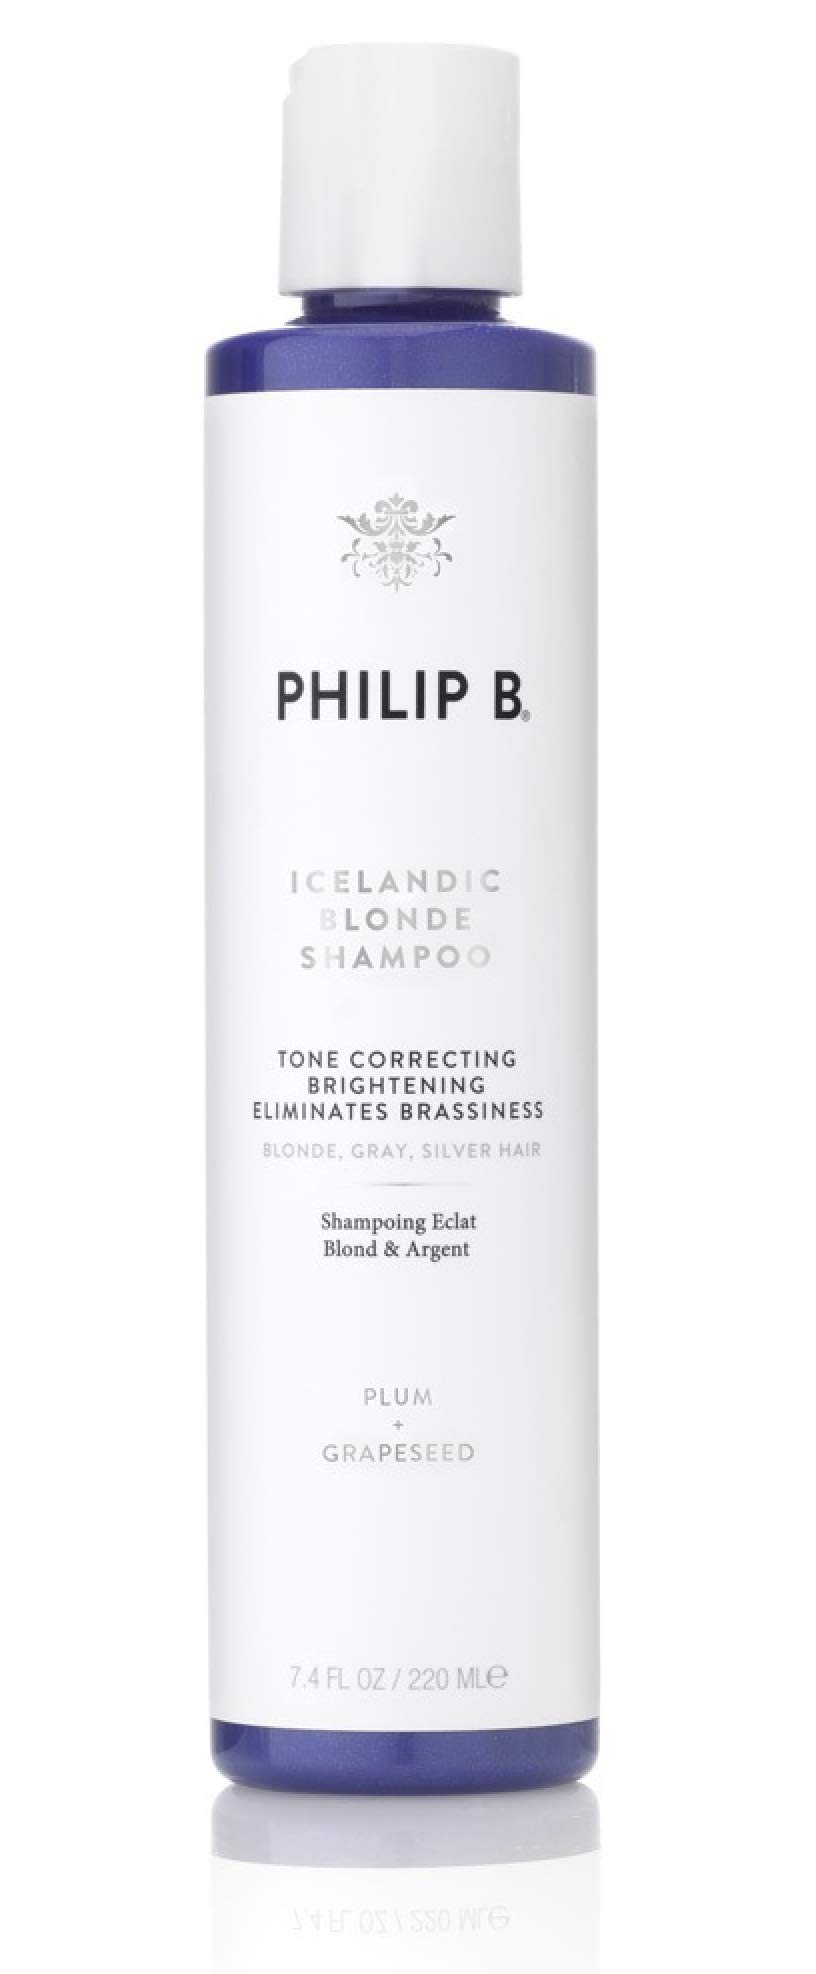 PHILIP B Icelandic Blonde Shampoo, Purple, Plum Extracts, 7.4 Fl. Oz. by PHILIP B.